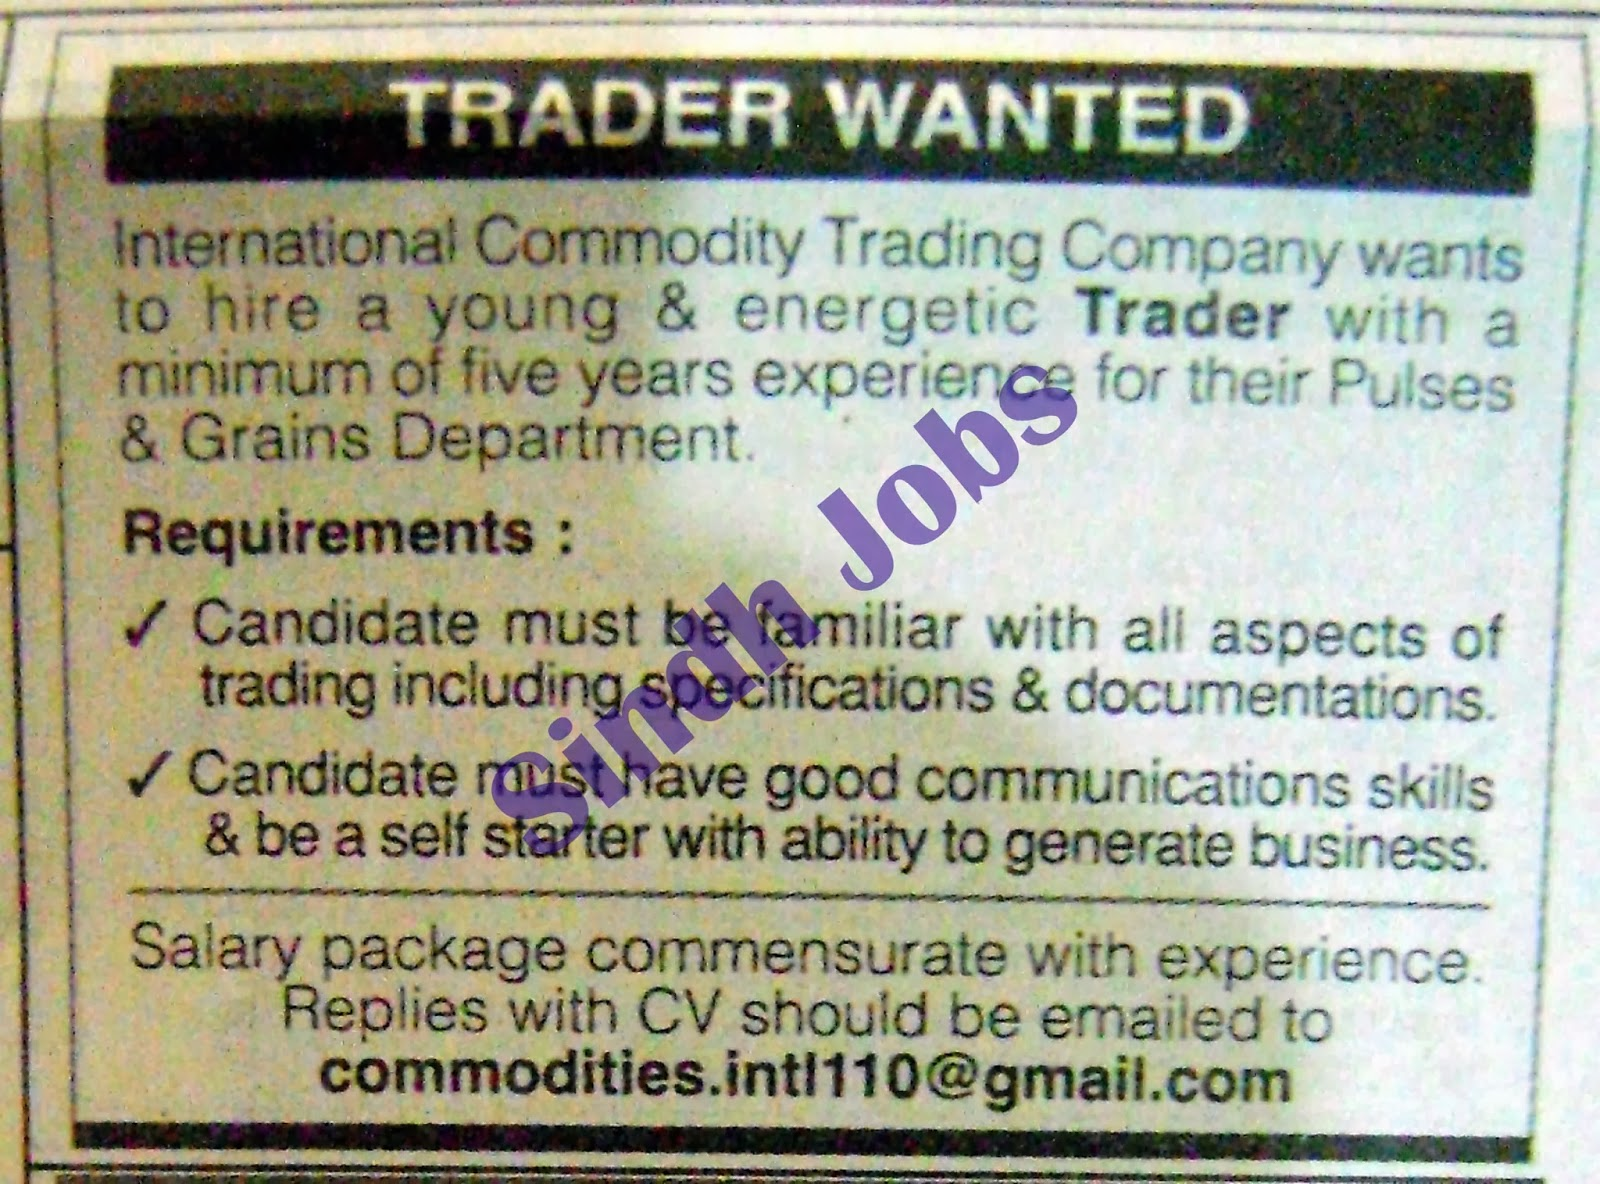 Schad commodity futures & options trading corporation